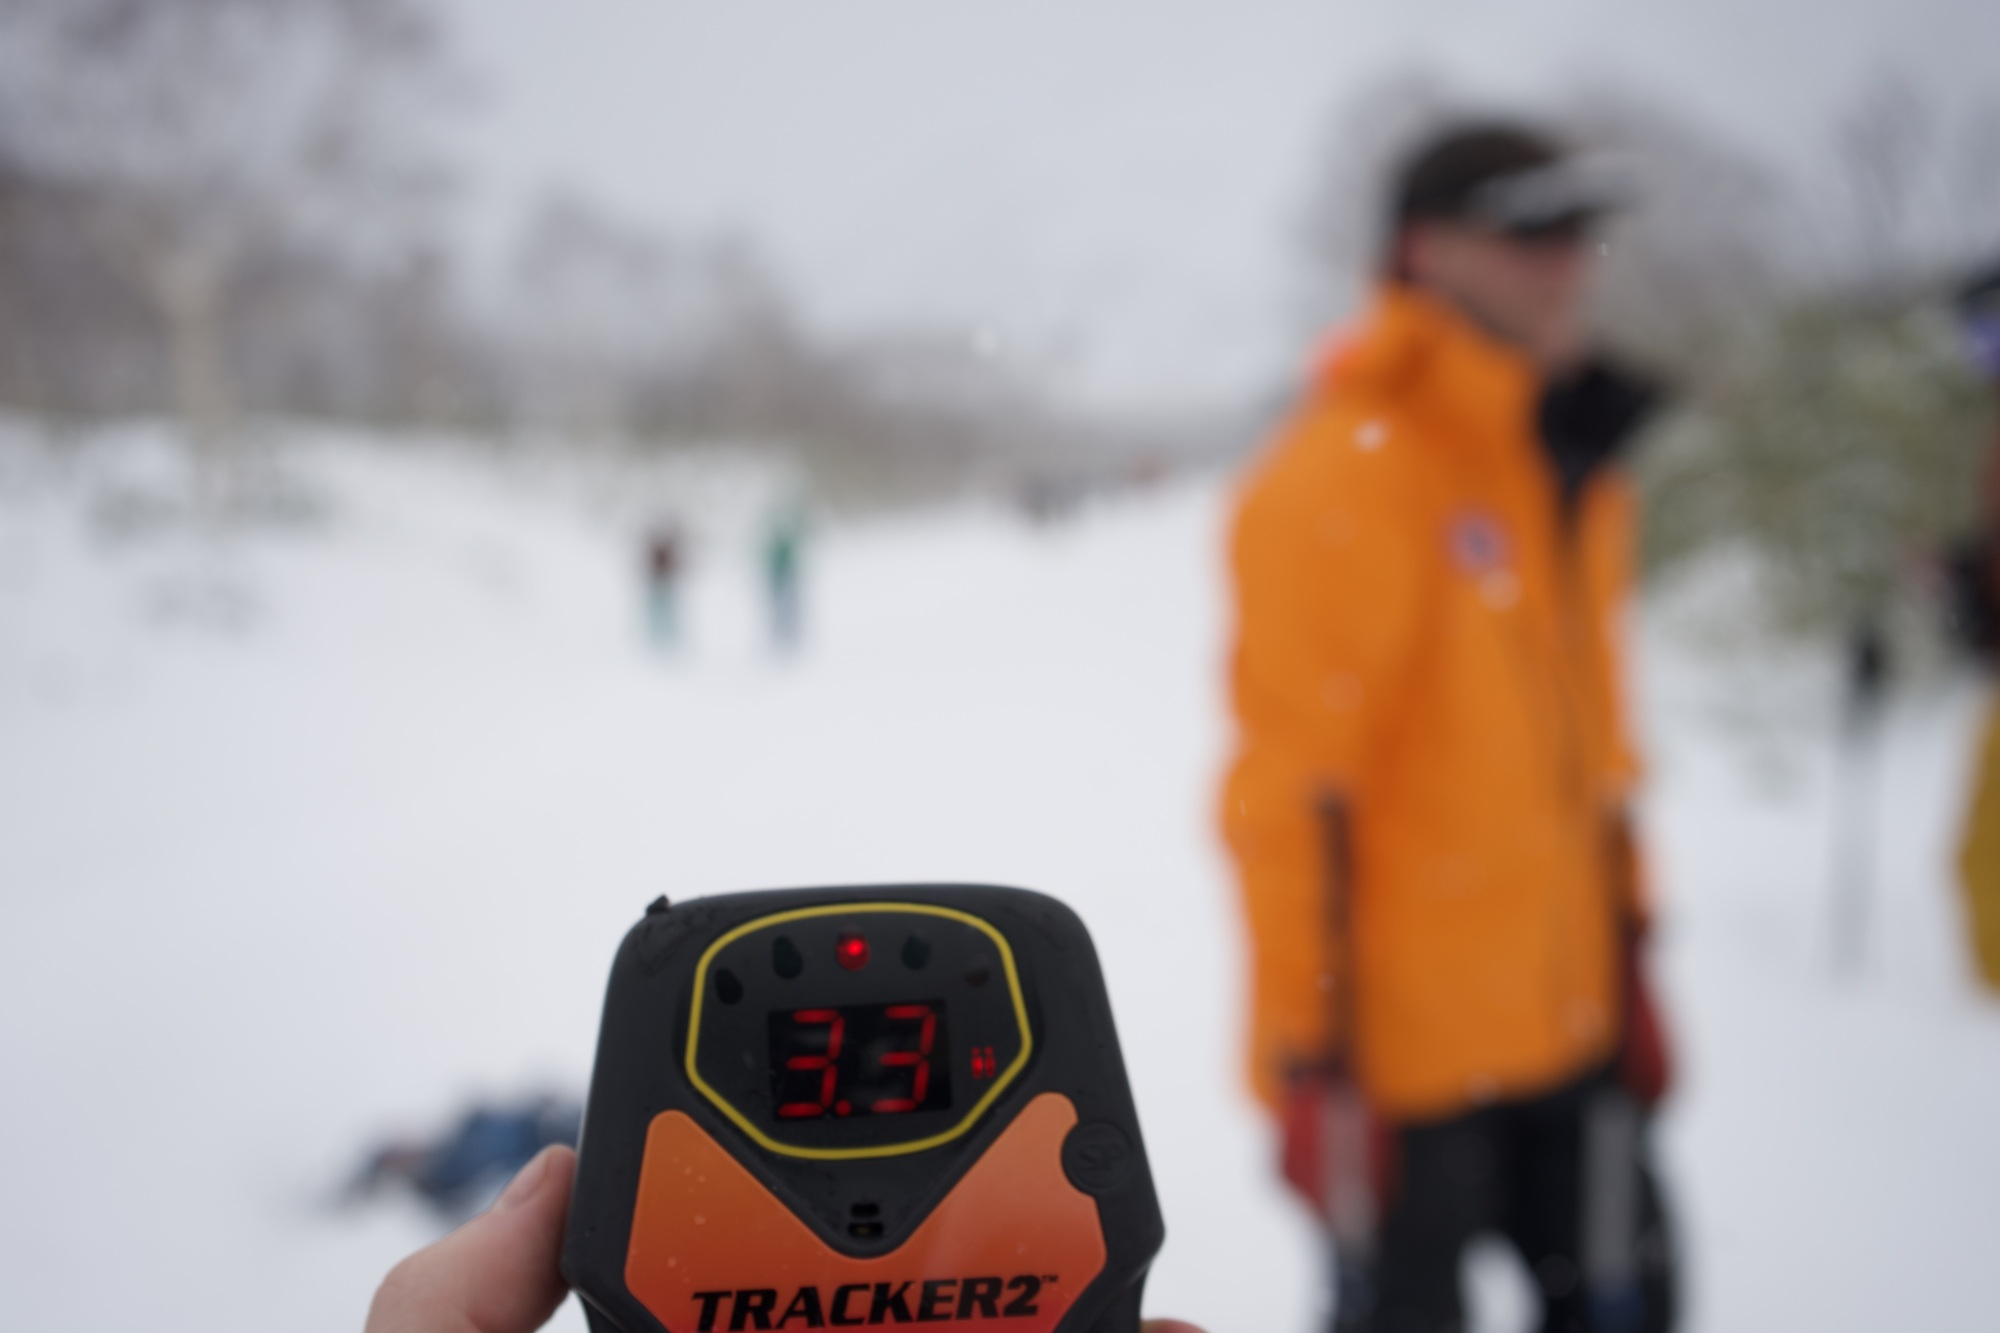 Set to search: A transceiver is a vital tool in performing avalanche rescue. | OSCAR BOYD